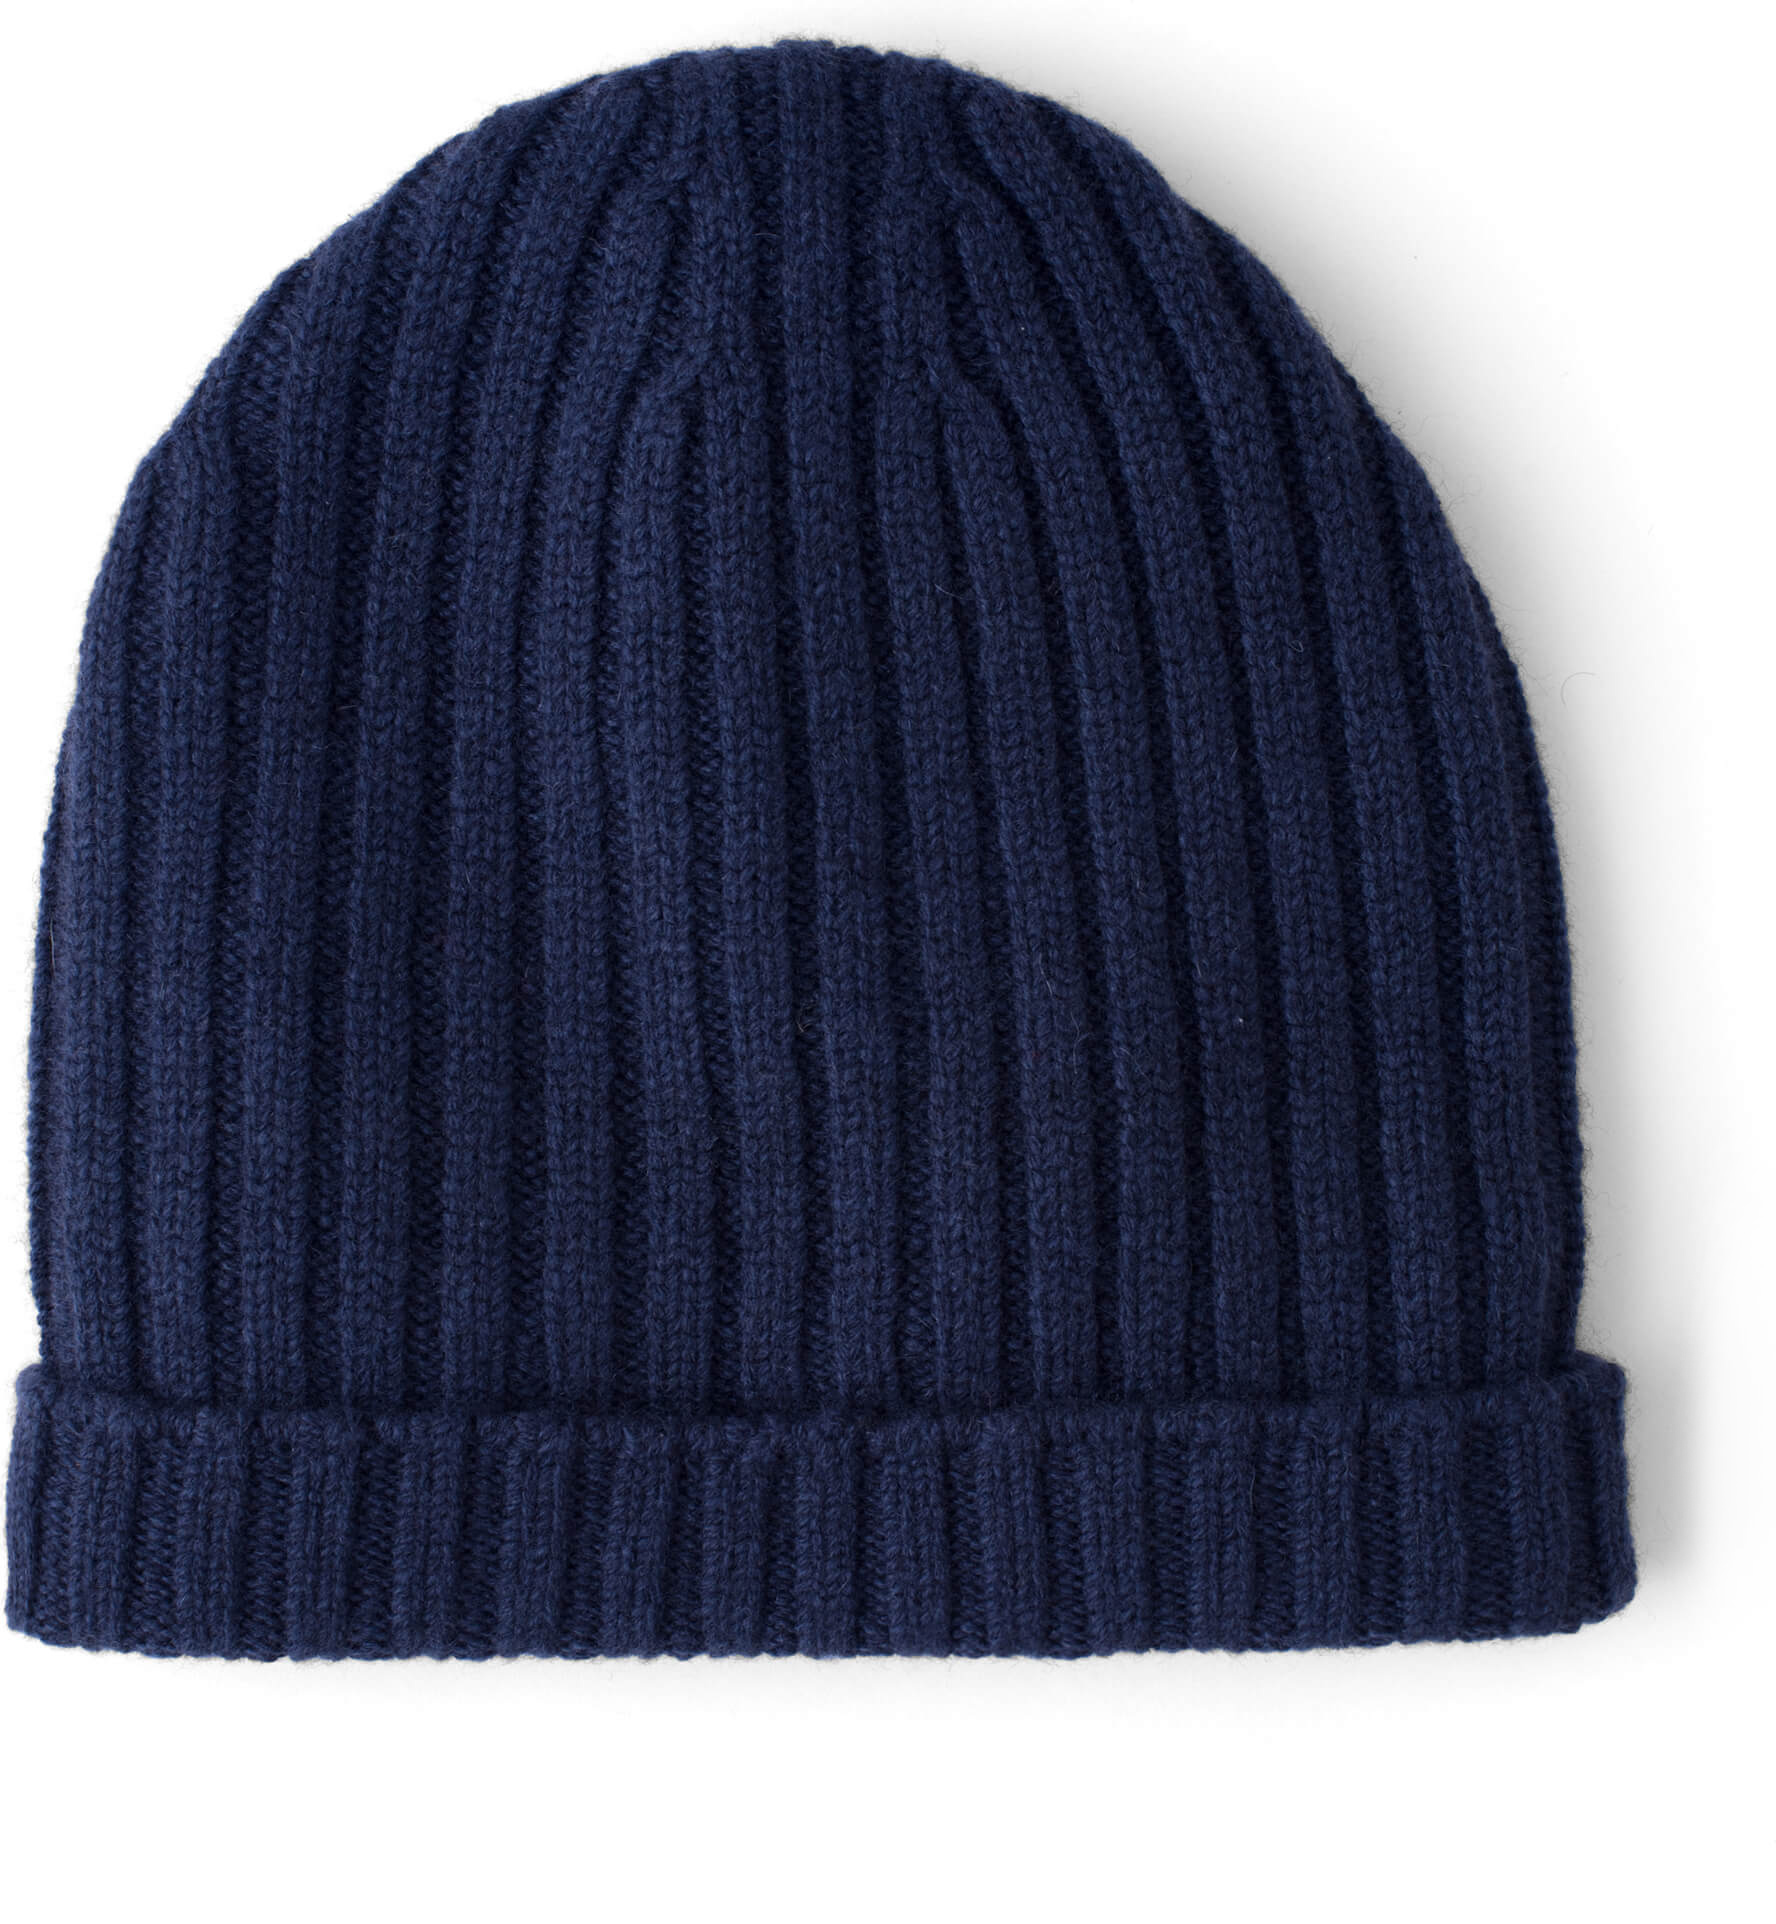 Zoom Image of Light Navy Wool and Cashmere Italian Knit Hat